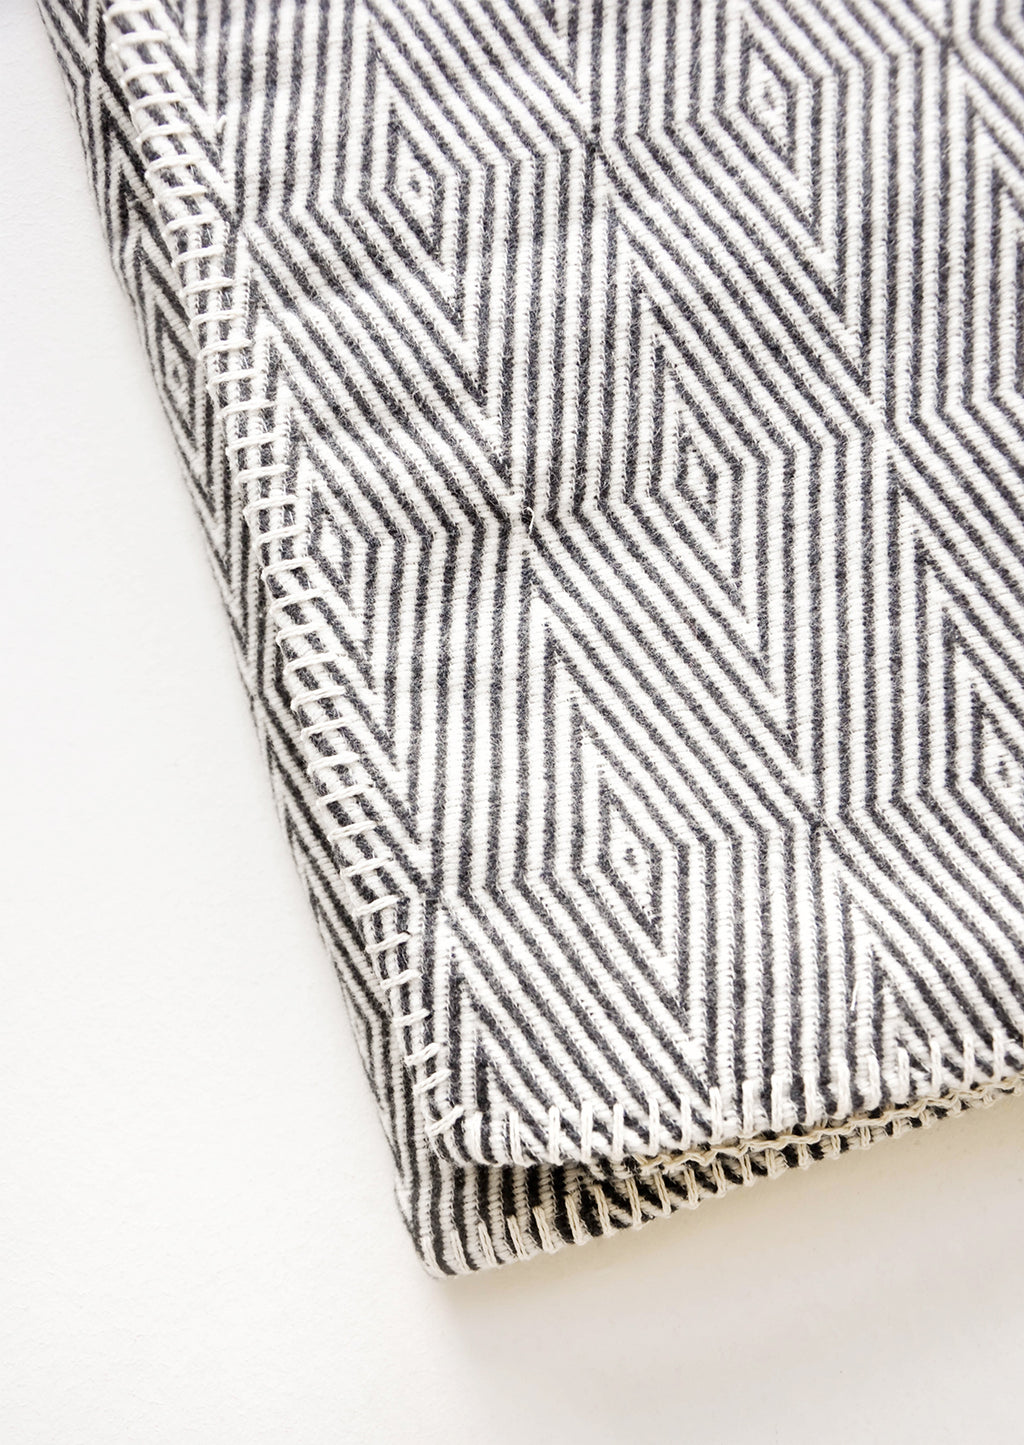 2: Cotton blanket with allover geometric diamond pattern in black and white, with whipstitched trim